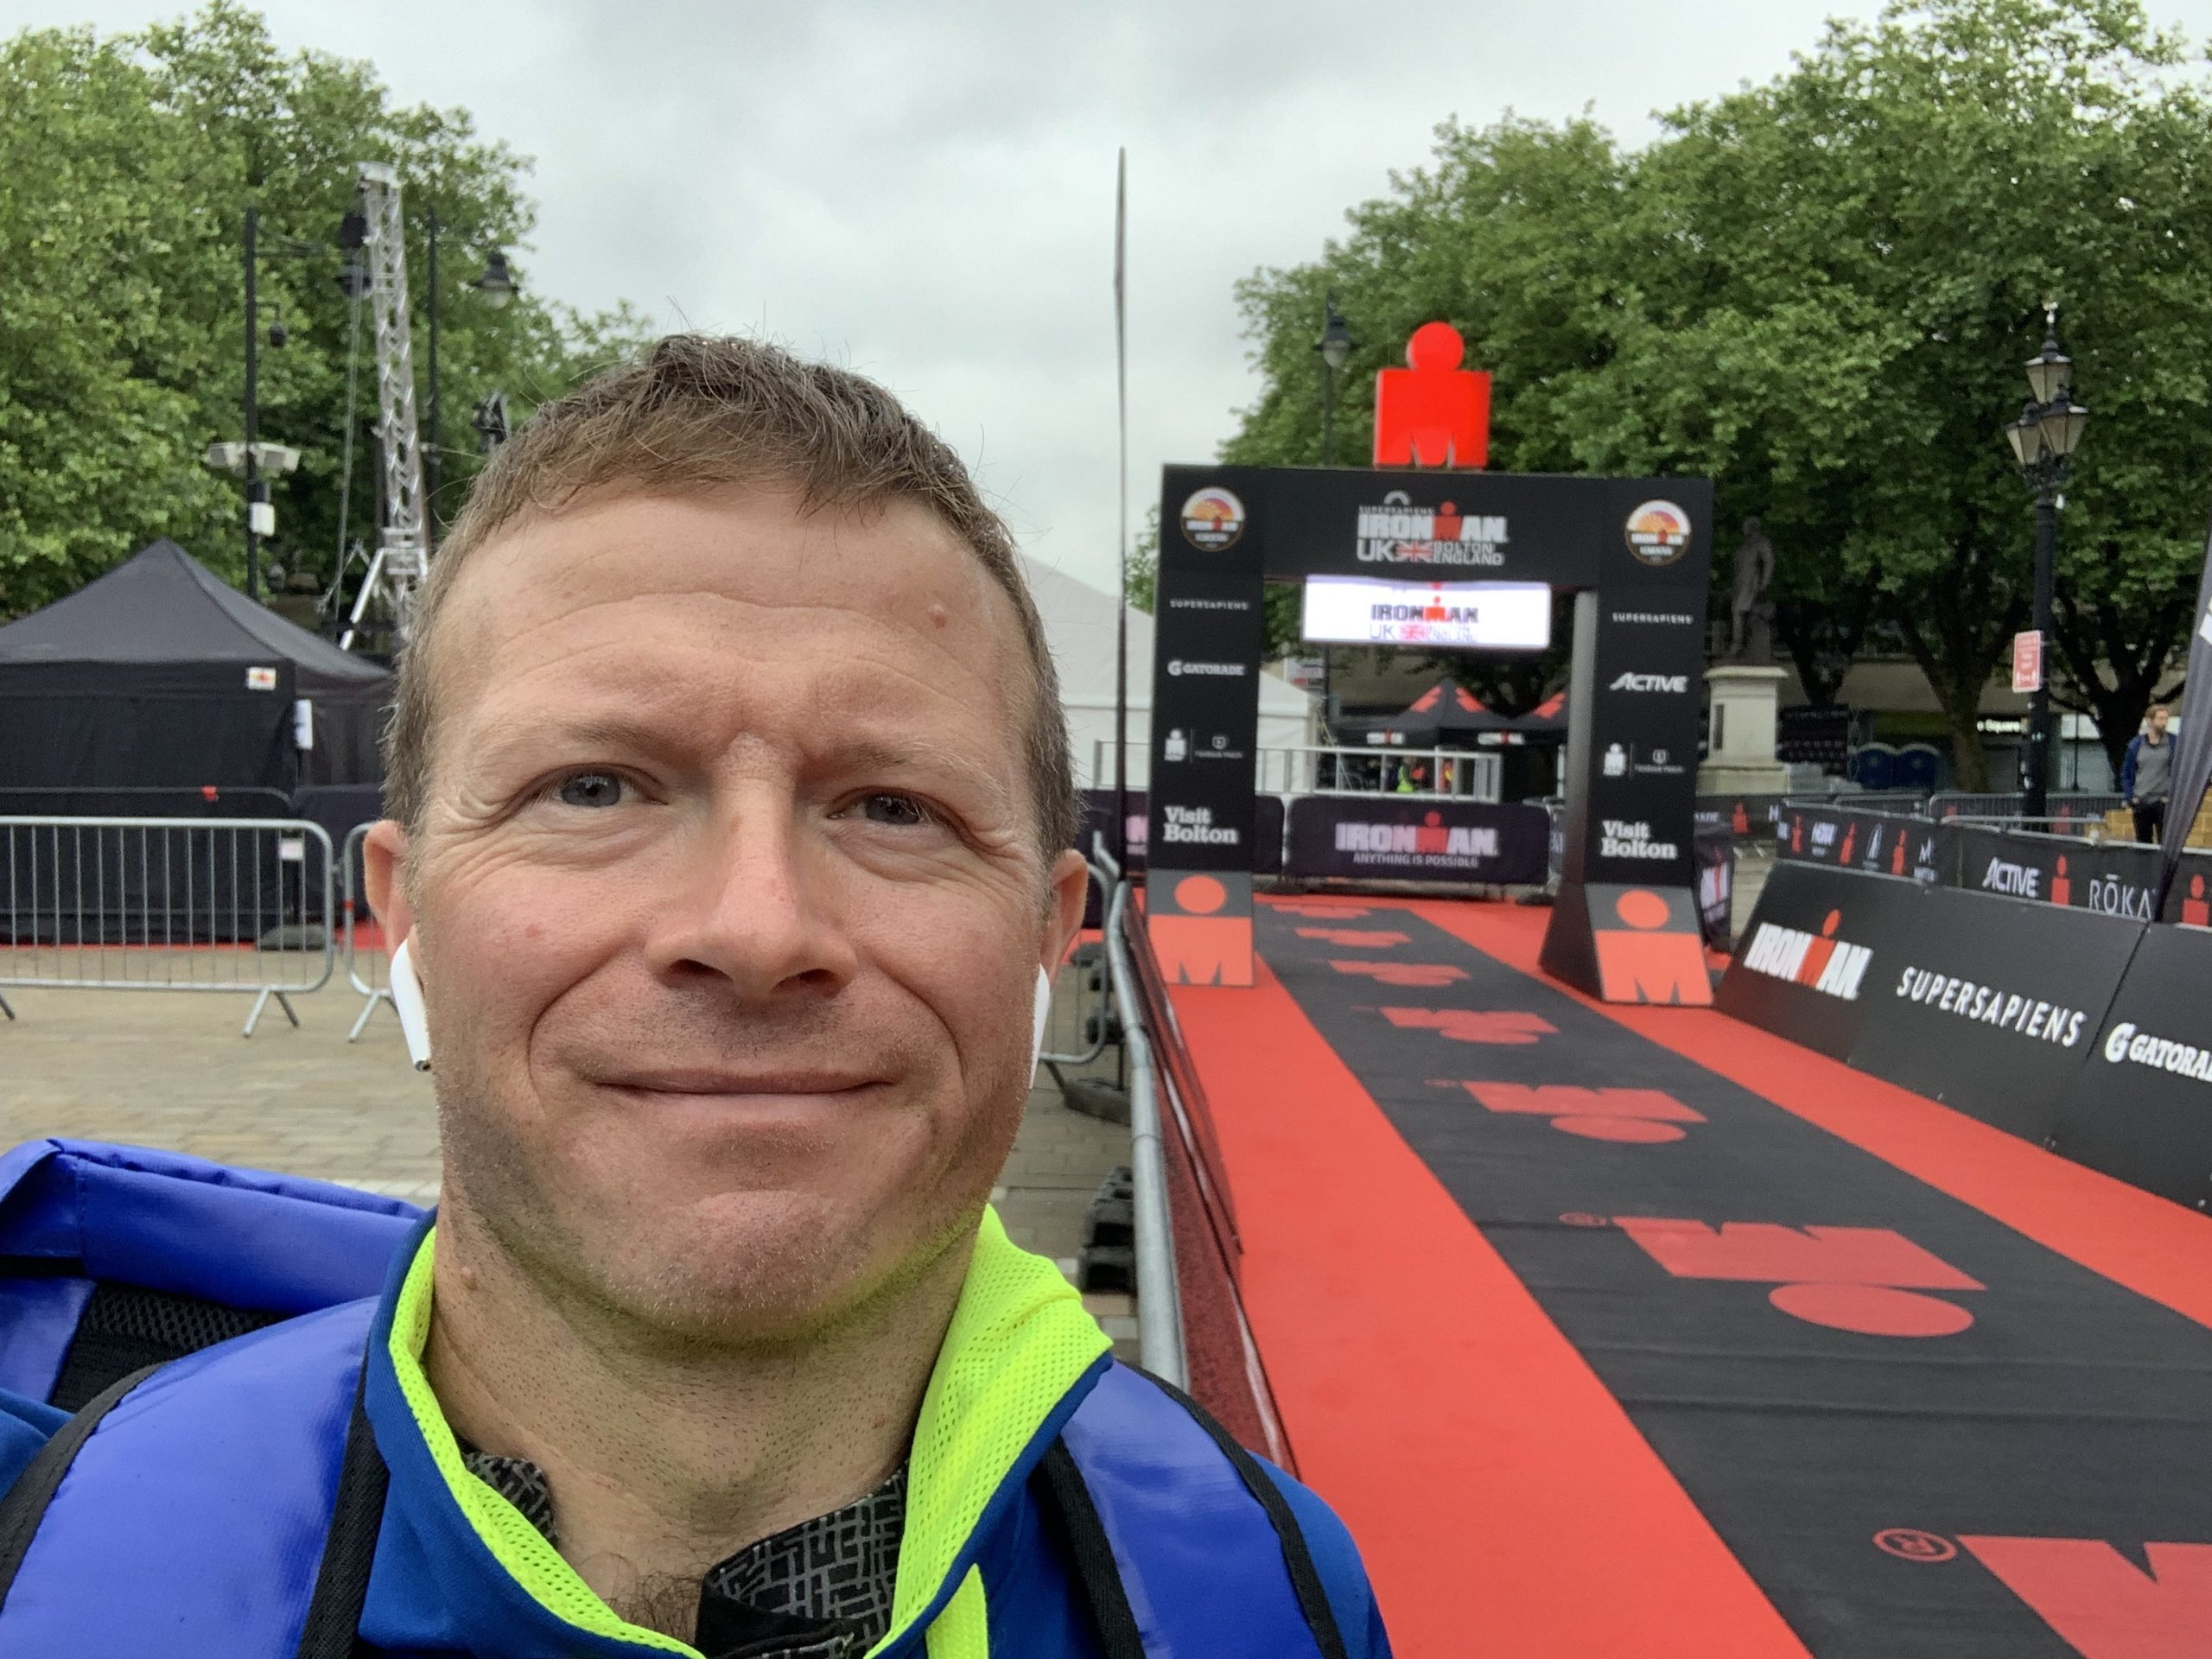 Mat taking a selfie in front of the Iron Man race finish line.